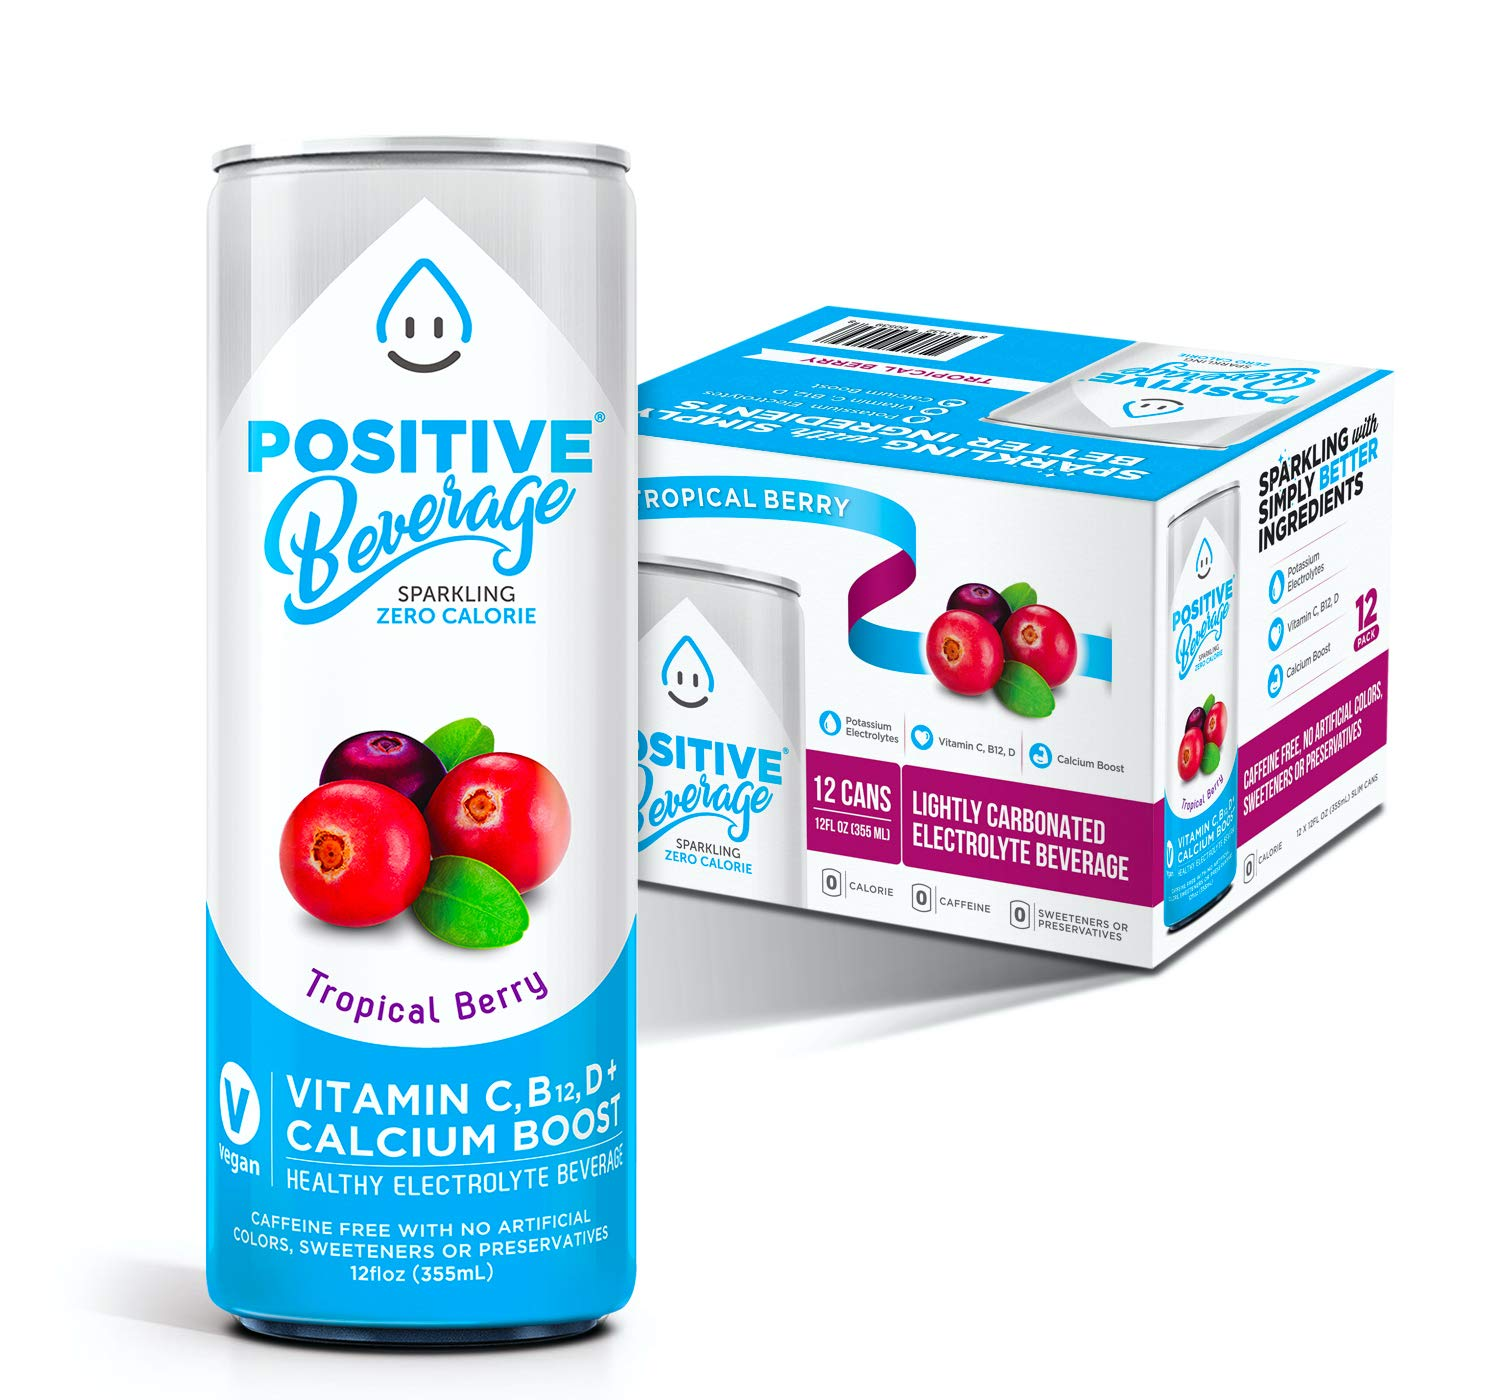 Positive Beverage IMMUNITY BOOST Tropical Berry, Zero Calorie, Electrolyte Beverage with Vitamins and Calcium, 12fl oz Cans, 12 Count Case